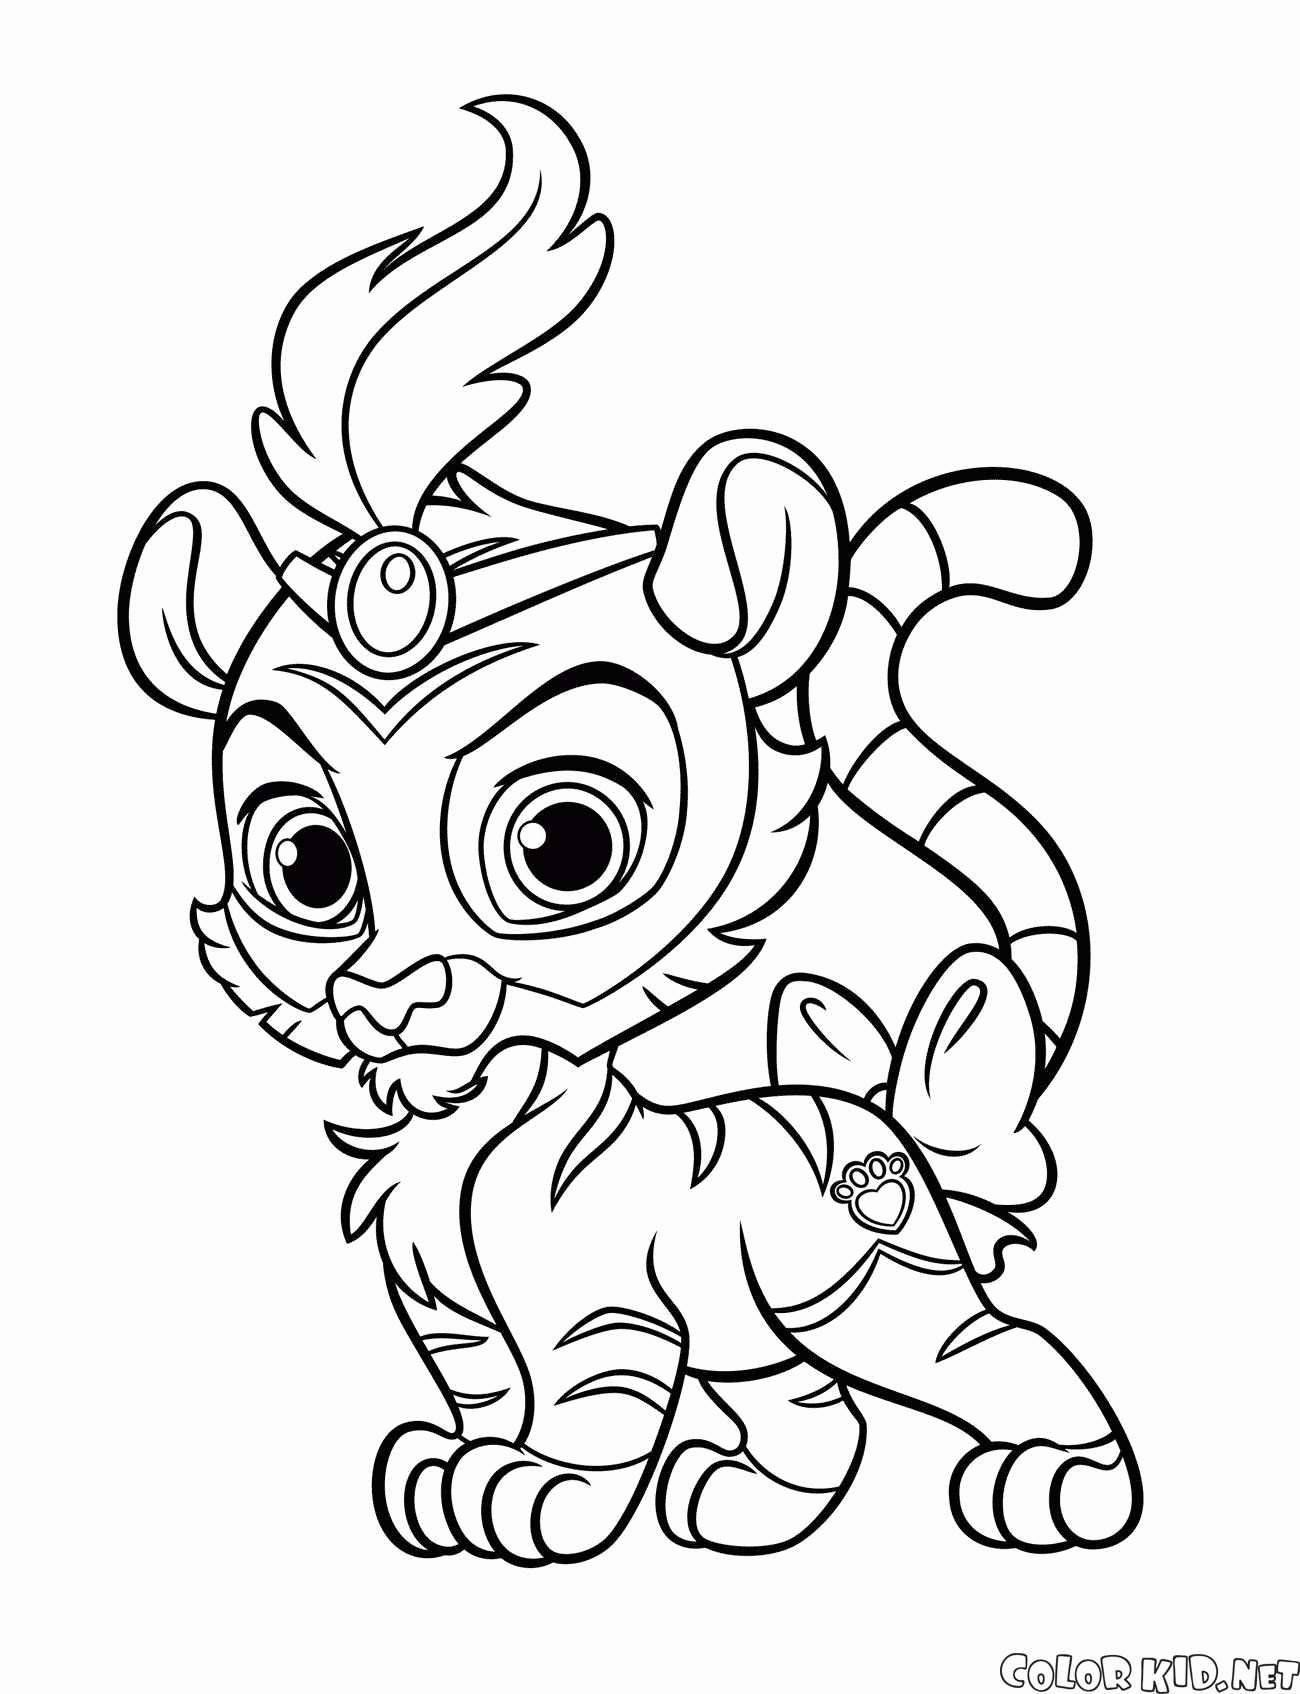 Awesome Haustiere Malvorlagen Palace Pets Coloring Pages Preschool Awesome Palace Pets Animal Coloring Pages Princess Coloring Pages Disney Princess Colors